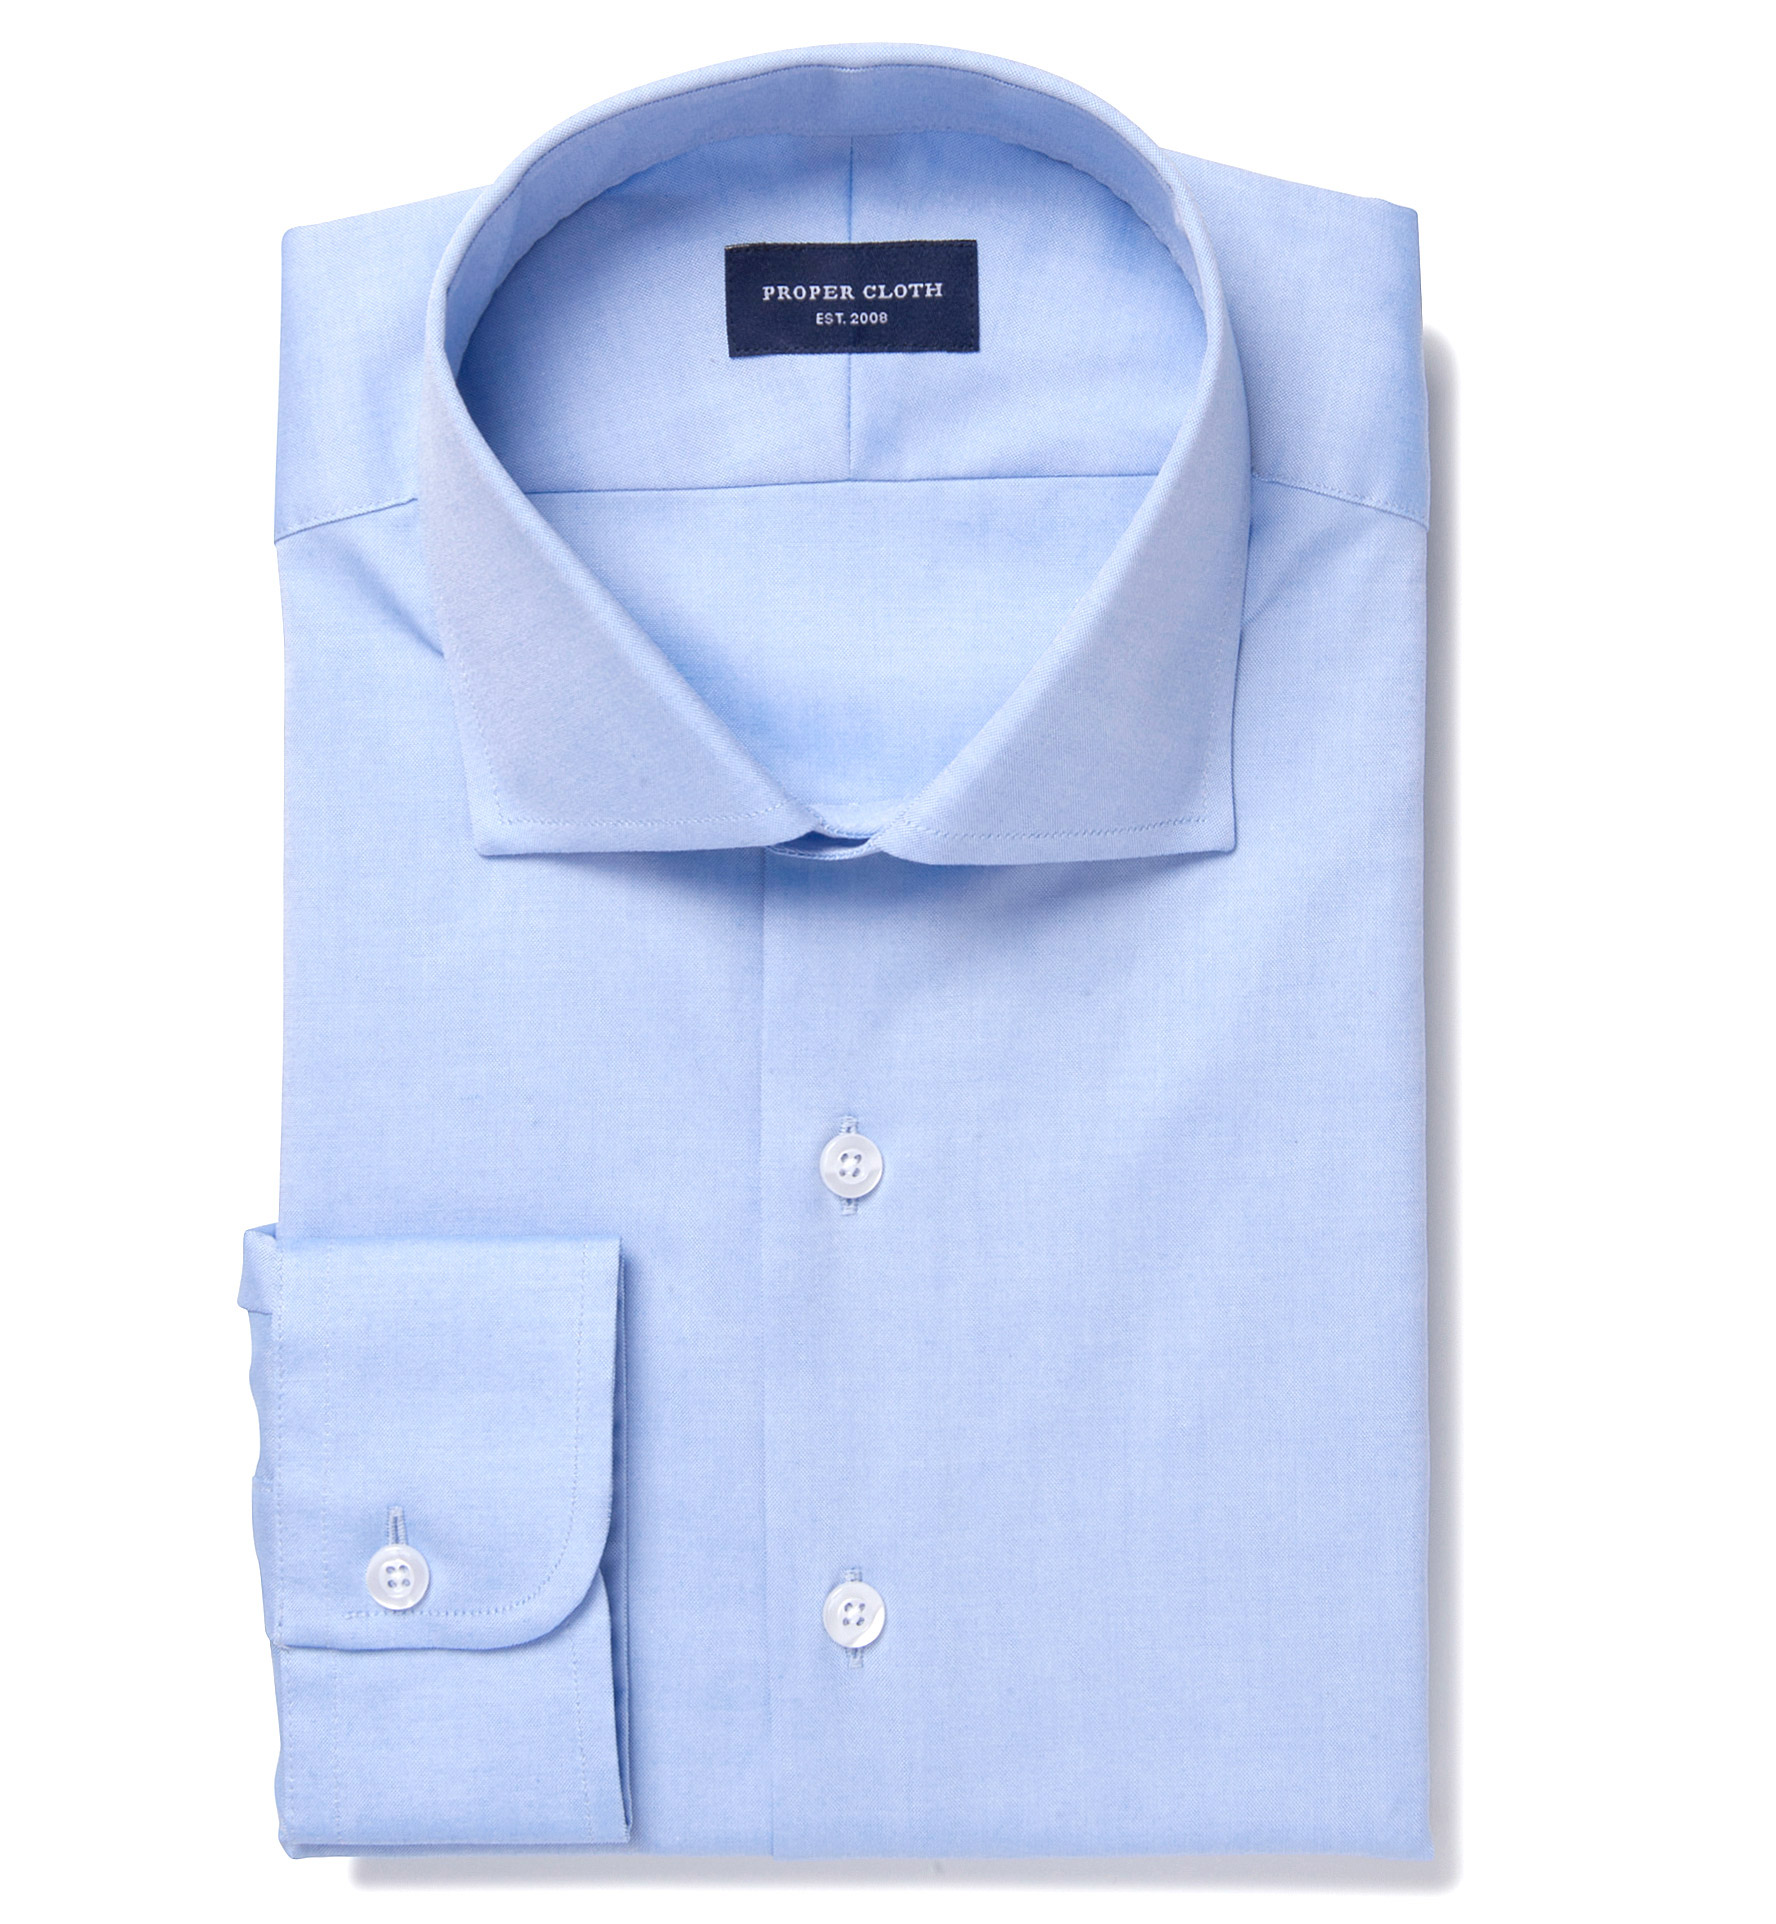 Bowery blue wrinkle resistant pinpoint custom dress shirt for Wrinkle resistant dress shirts